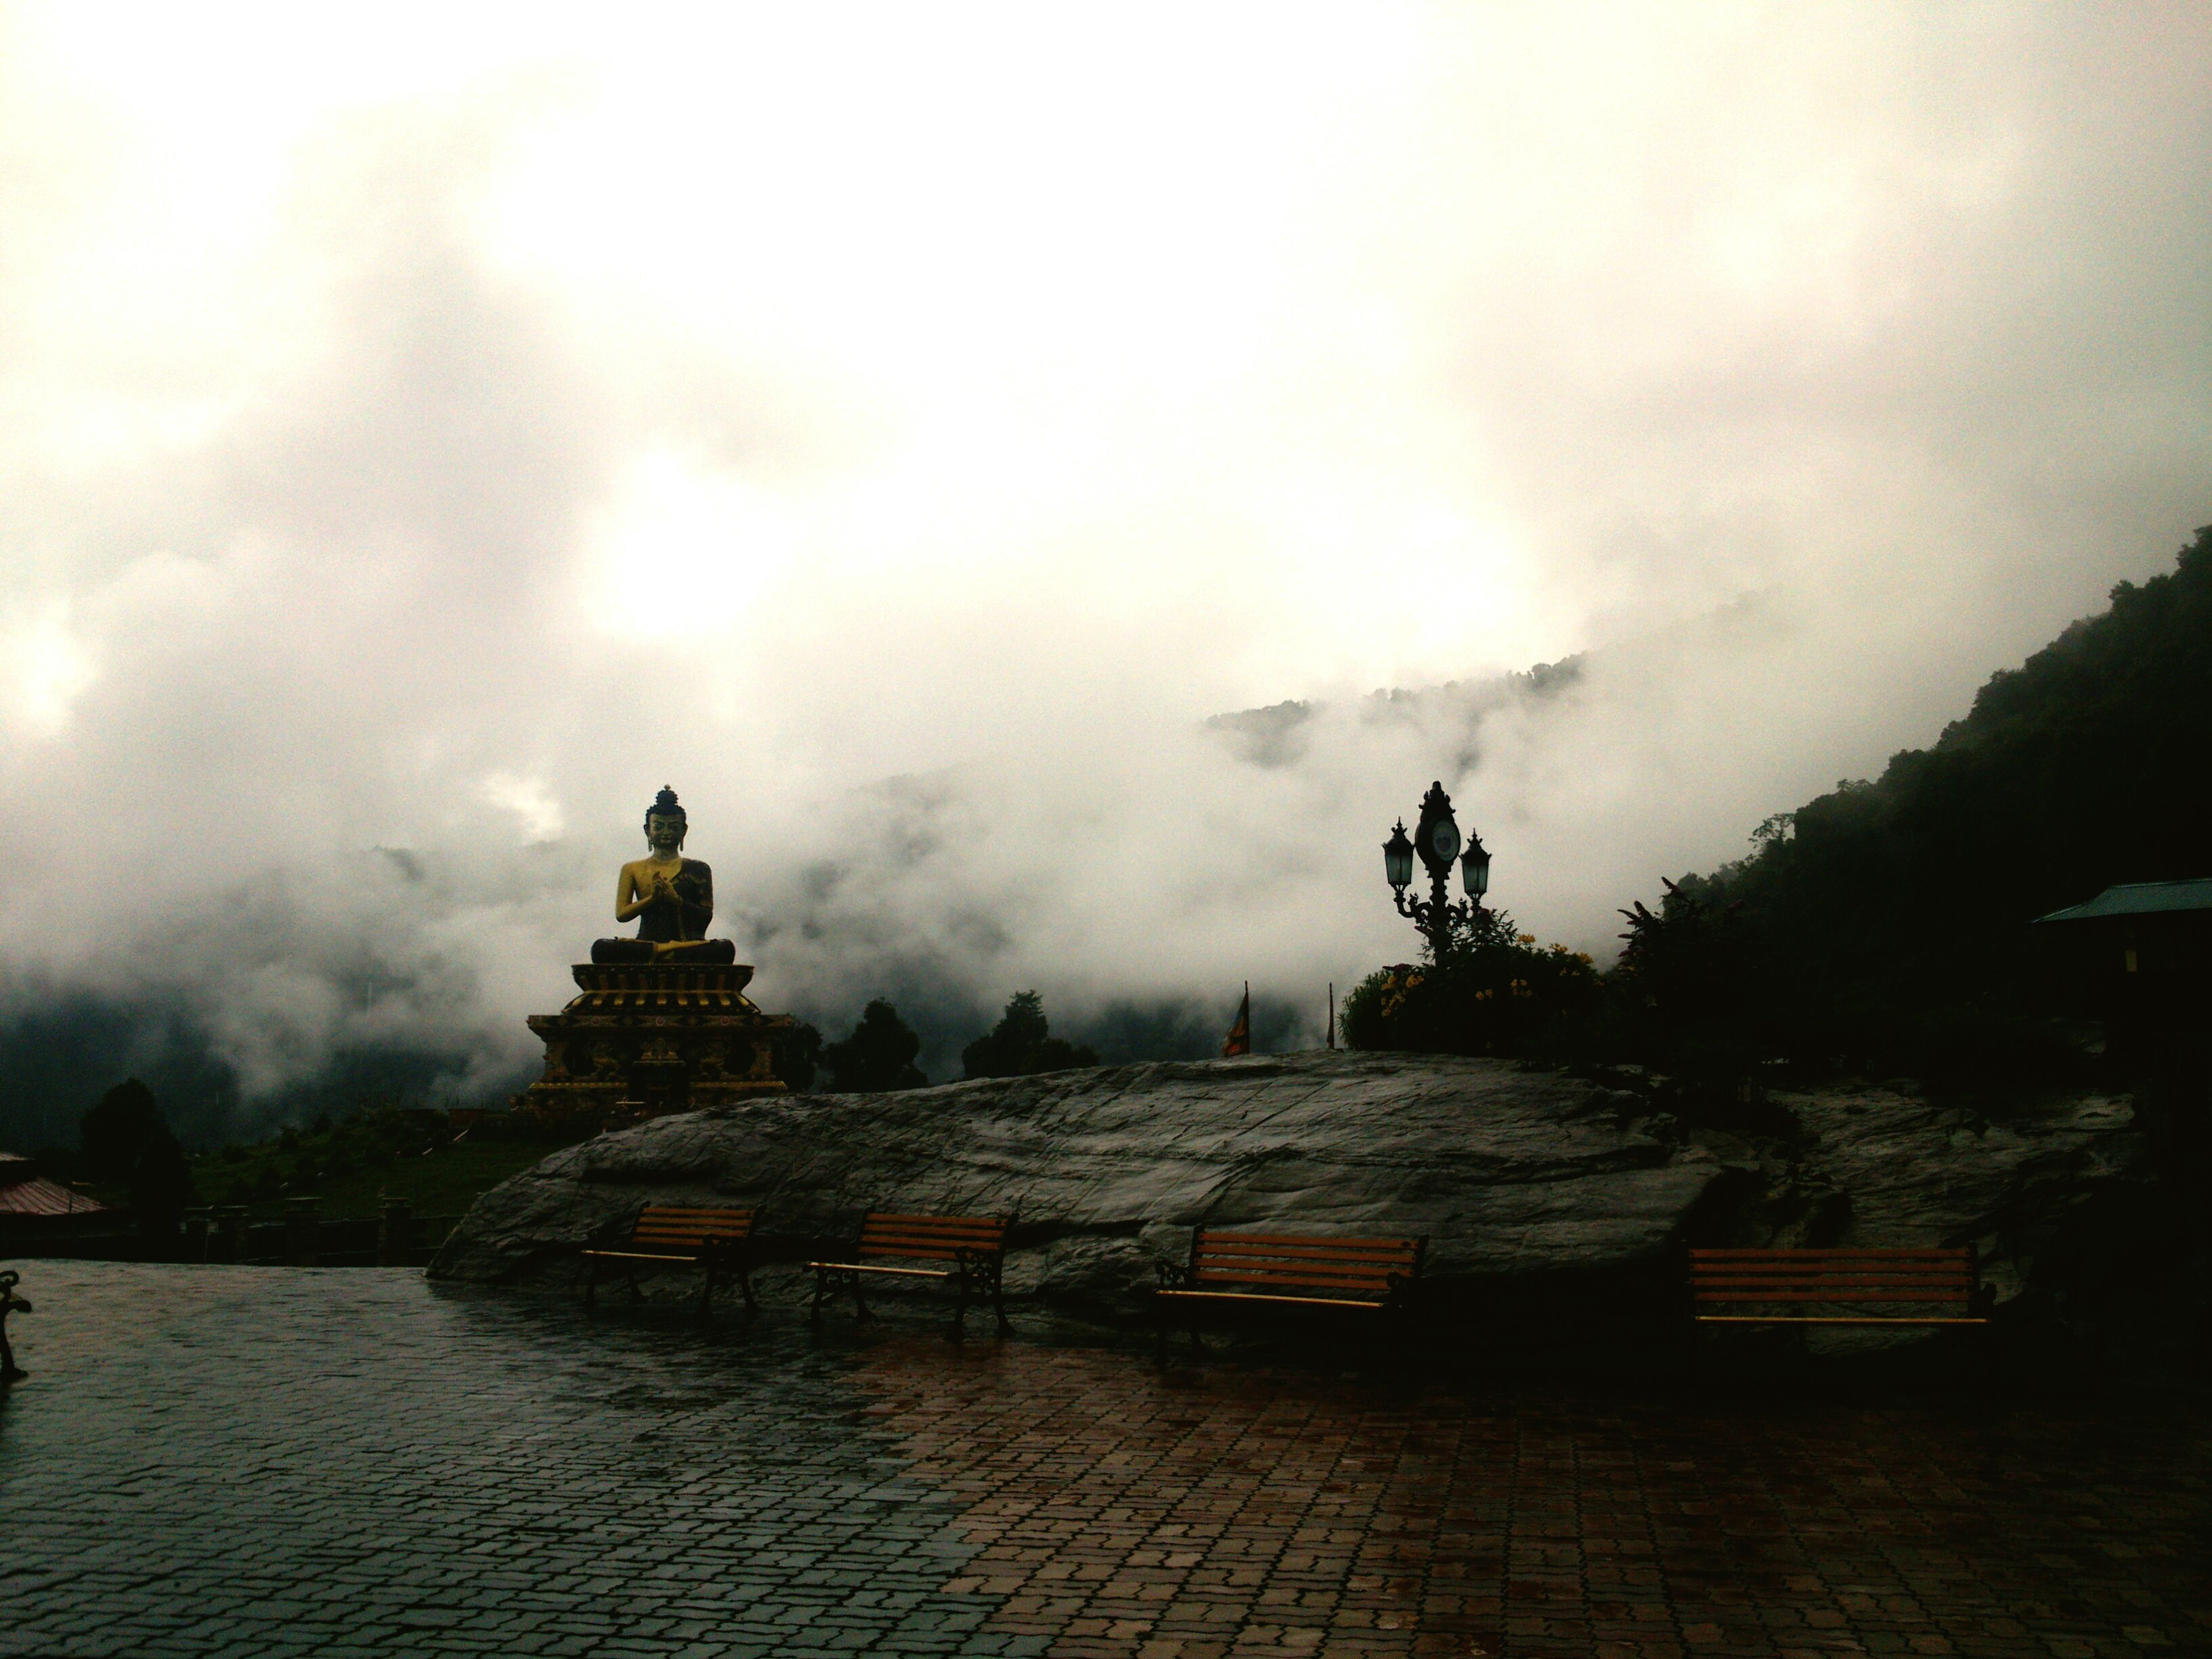 architecture, built structure, sky, cloud - sky, water, building exterior, cloudy, waterfront, weather, history, dusk, overcast, sunset, temple - building, nature, tranquility, the past, river, old, cloud